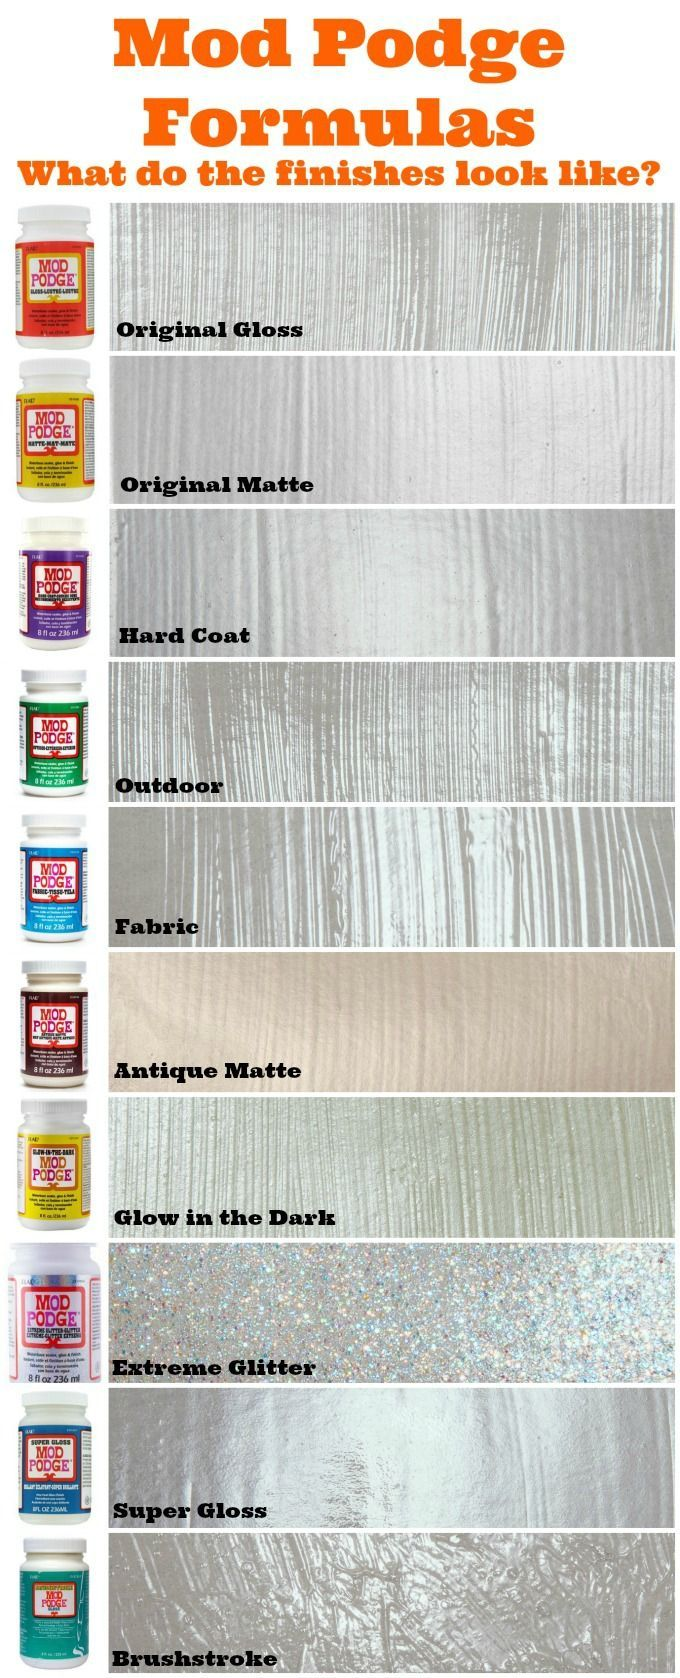 Mod Podge Formulas: What the Finishes Look Like | Mod Podge